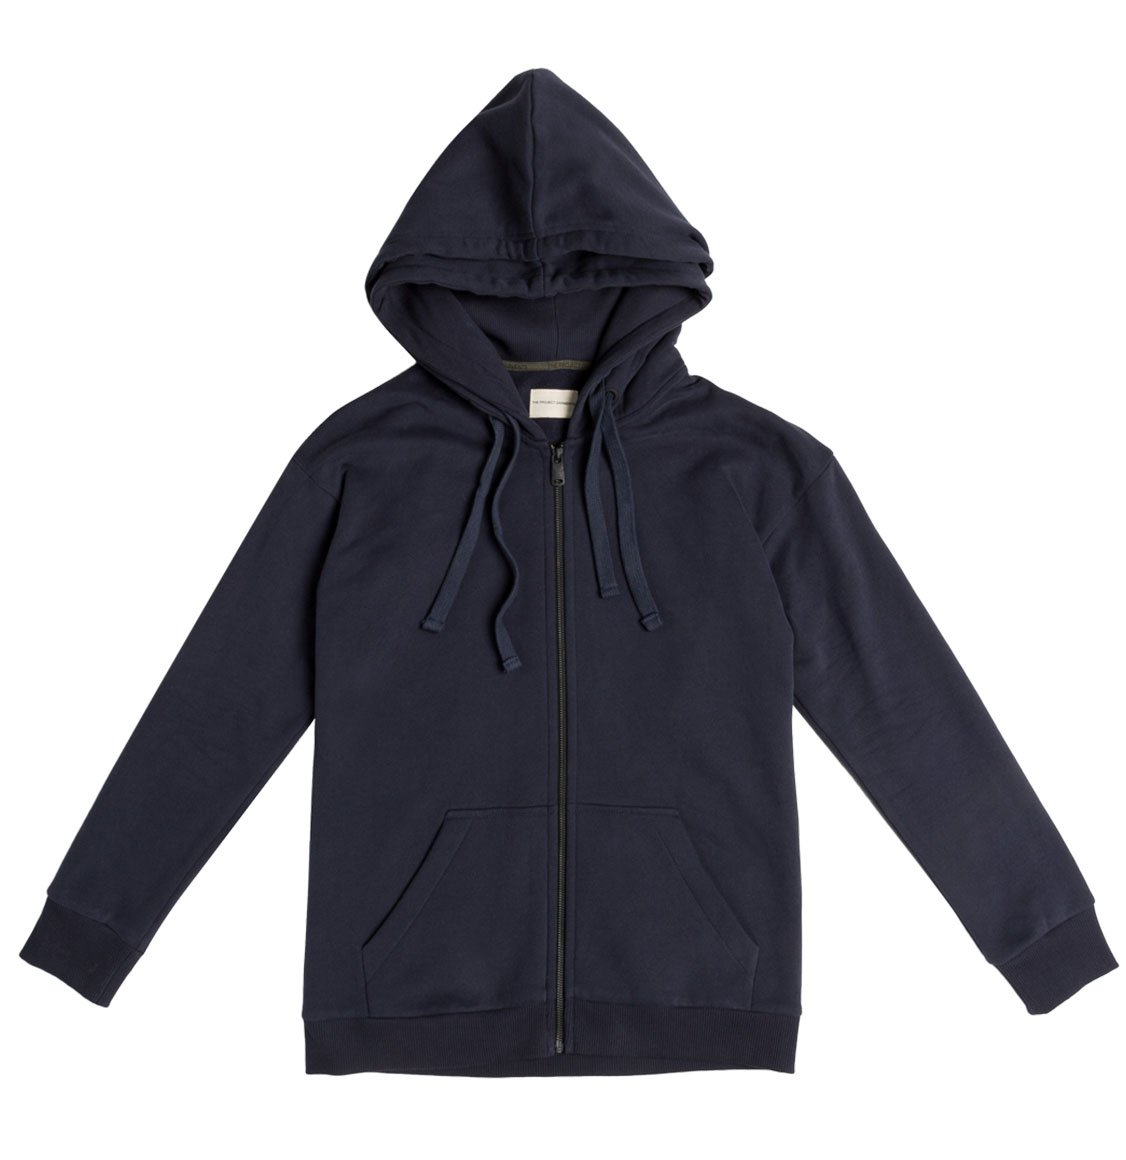 The Project Garments Organic Cotton Double Hooded Zip Up Navy Blue